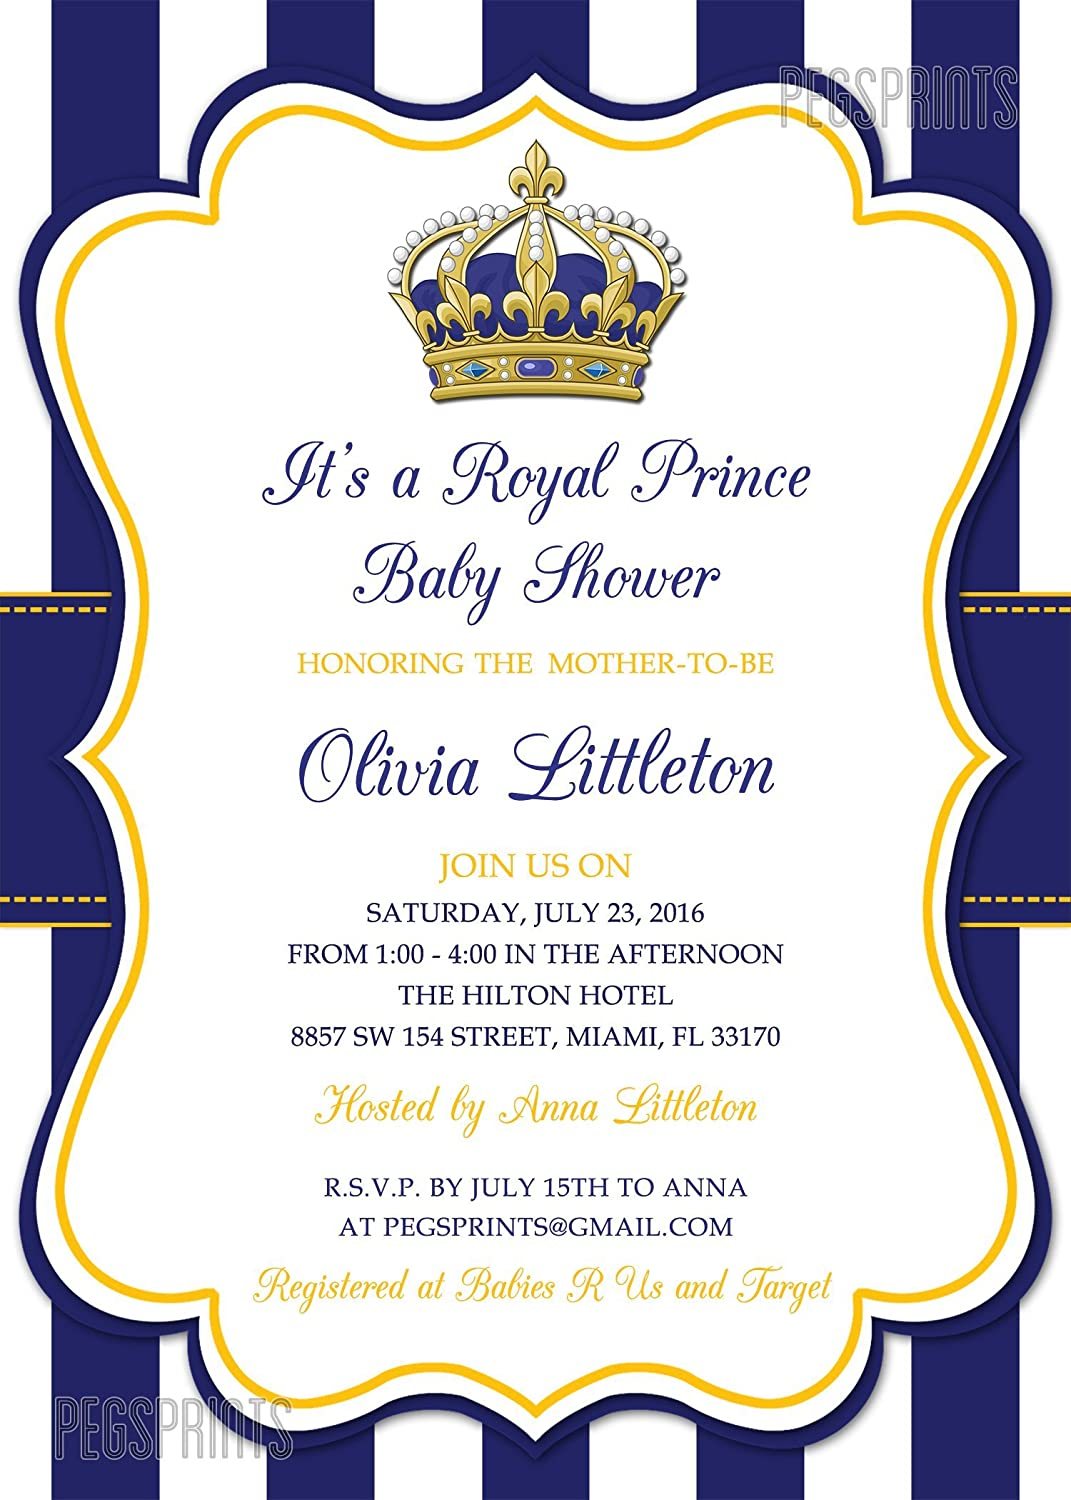 Amazon.com: Royal Prince Baby Shower Invitation - Prince Baby Shower ...